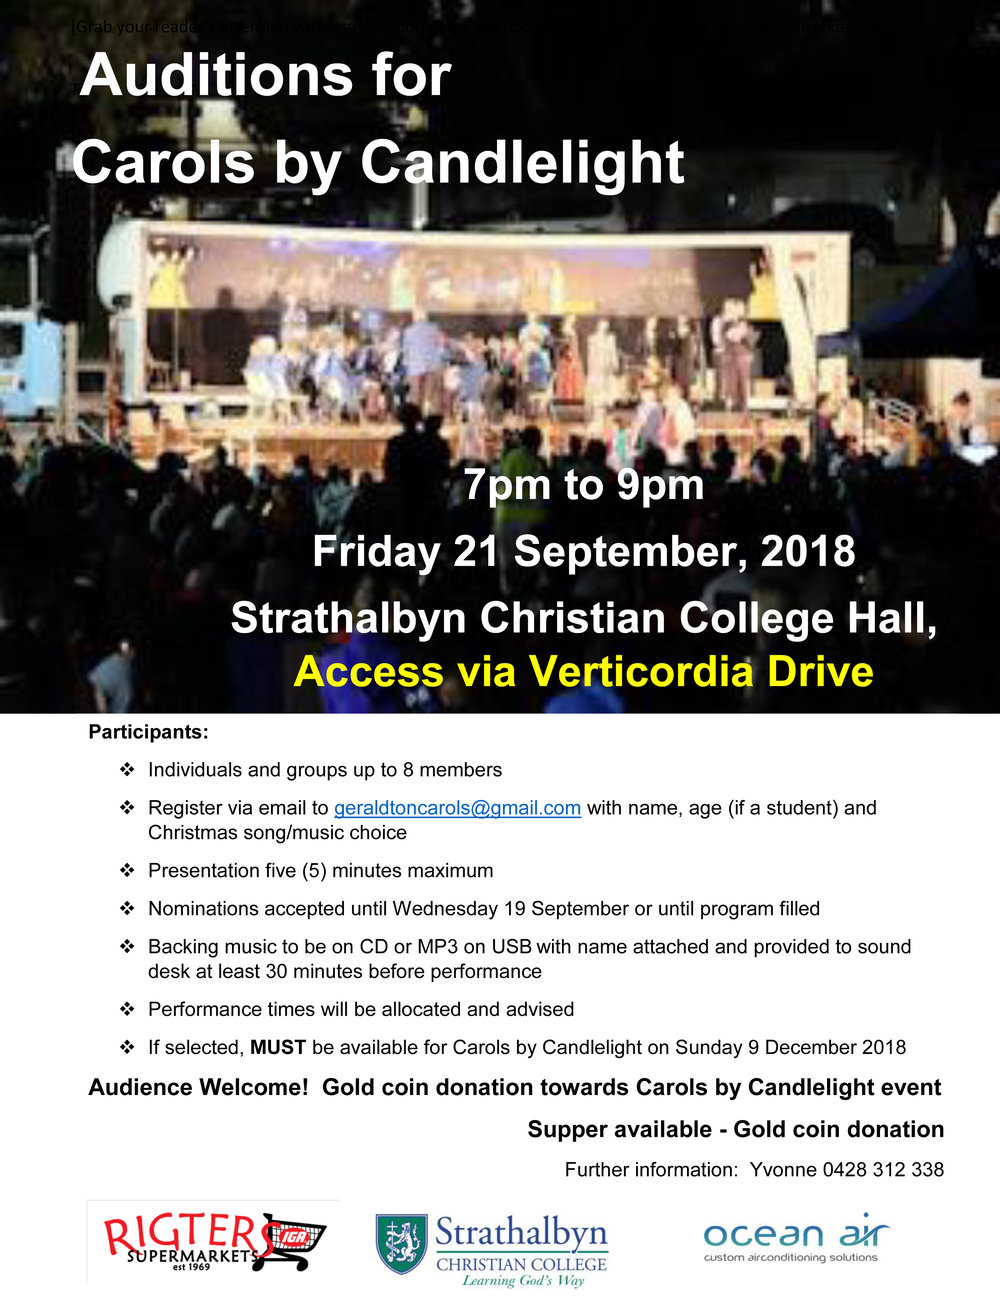 Invitation - Auditions - Carols by Candlelight.jpg